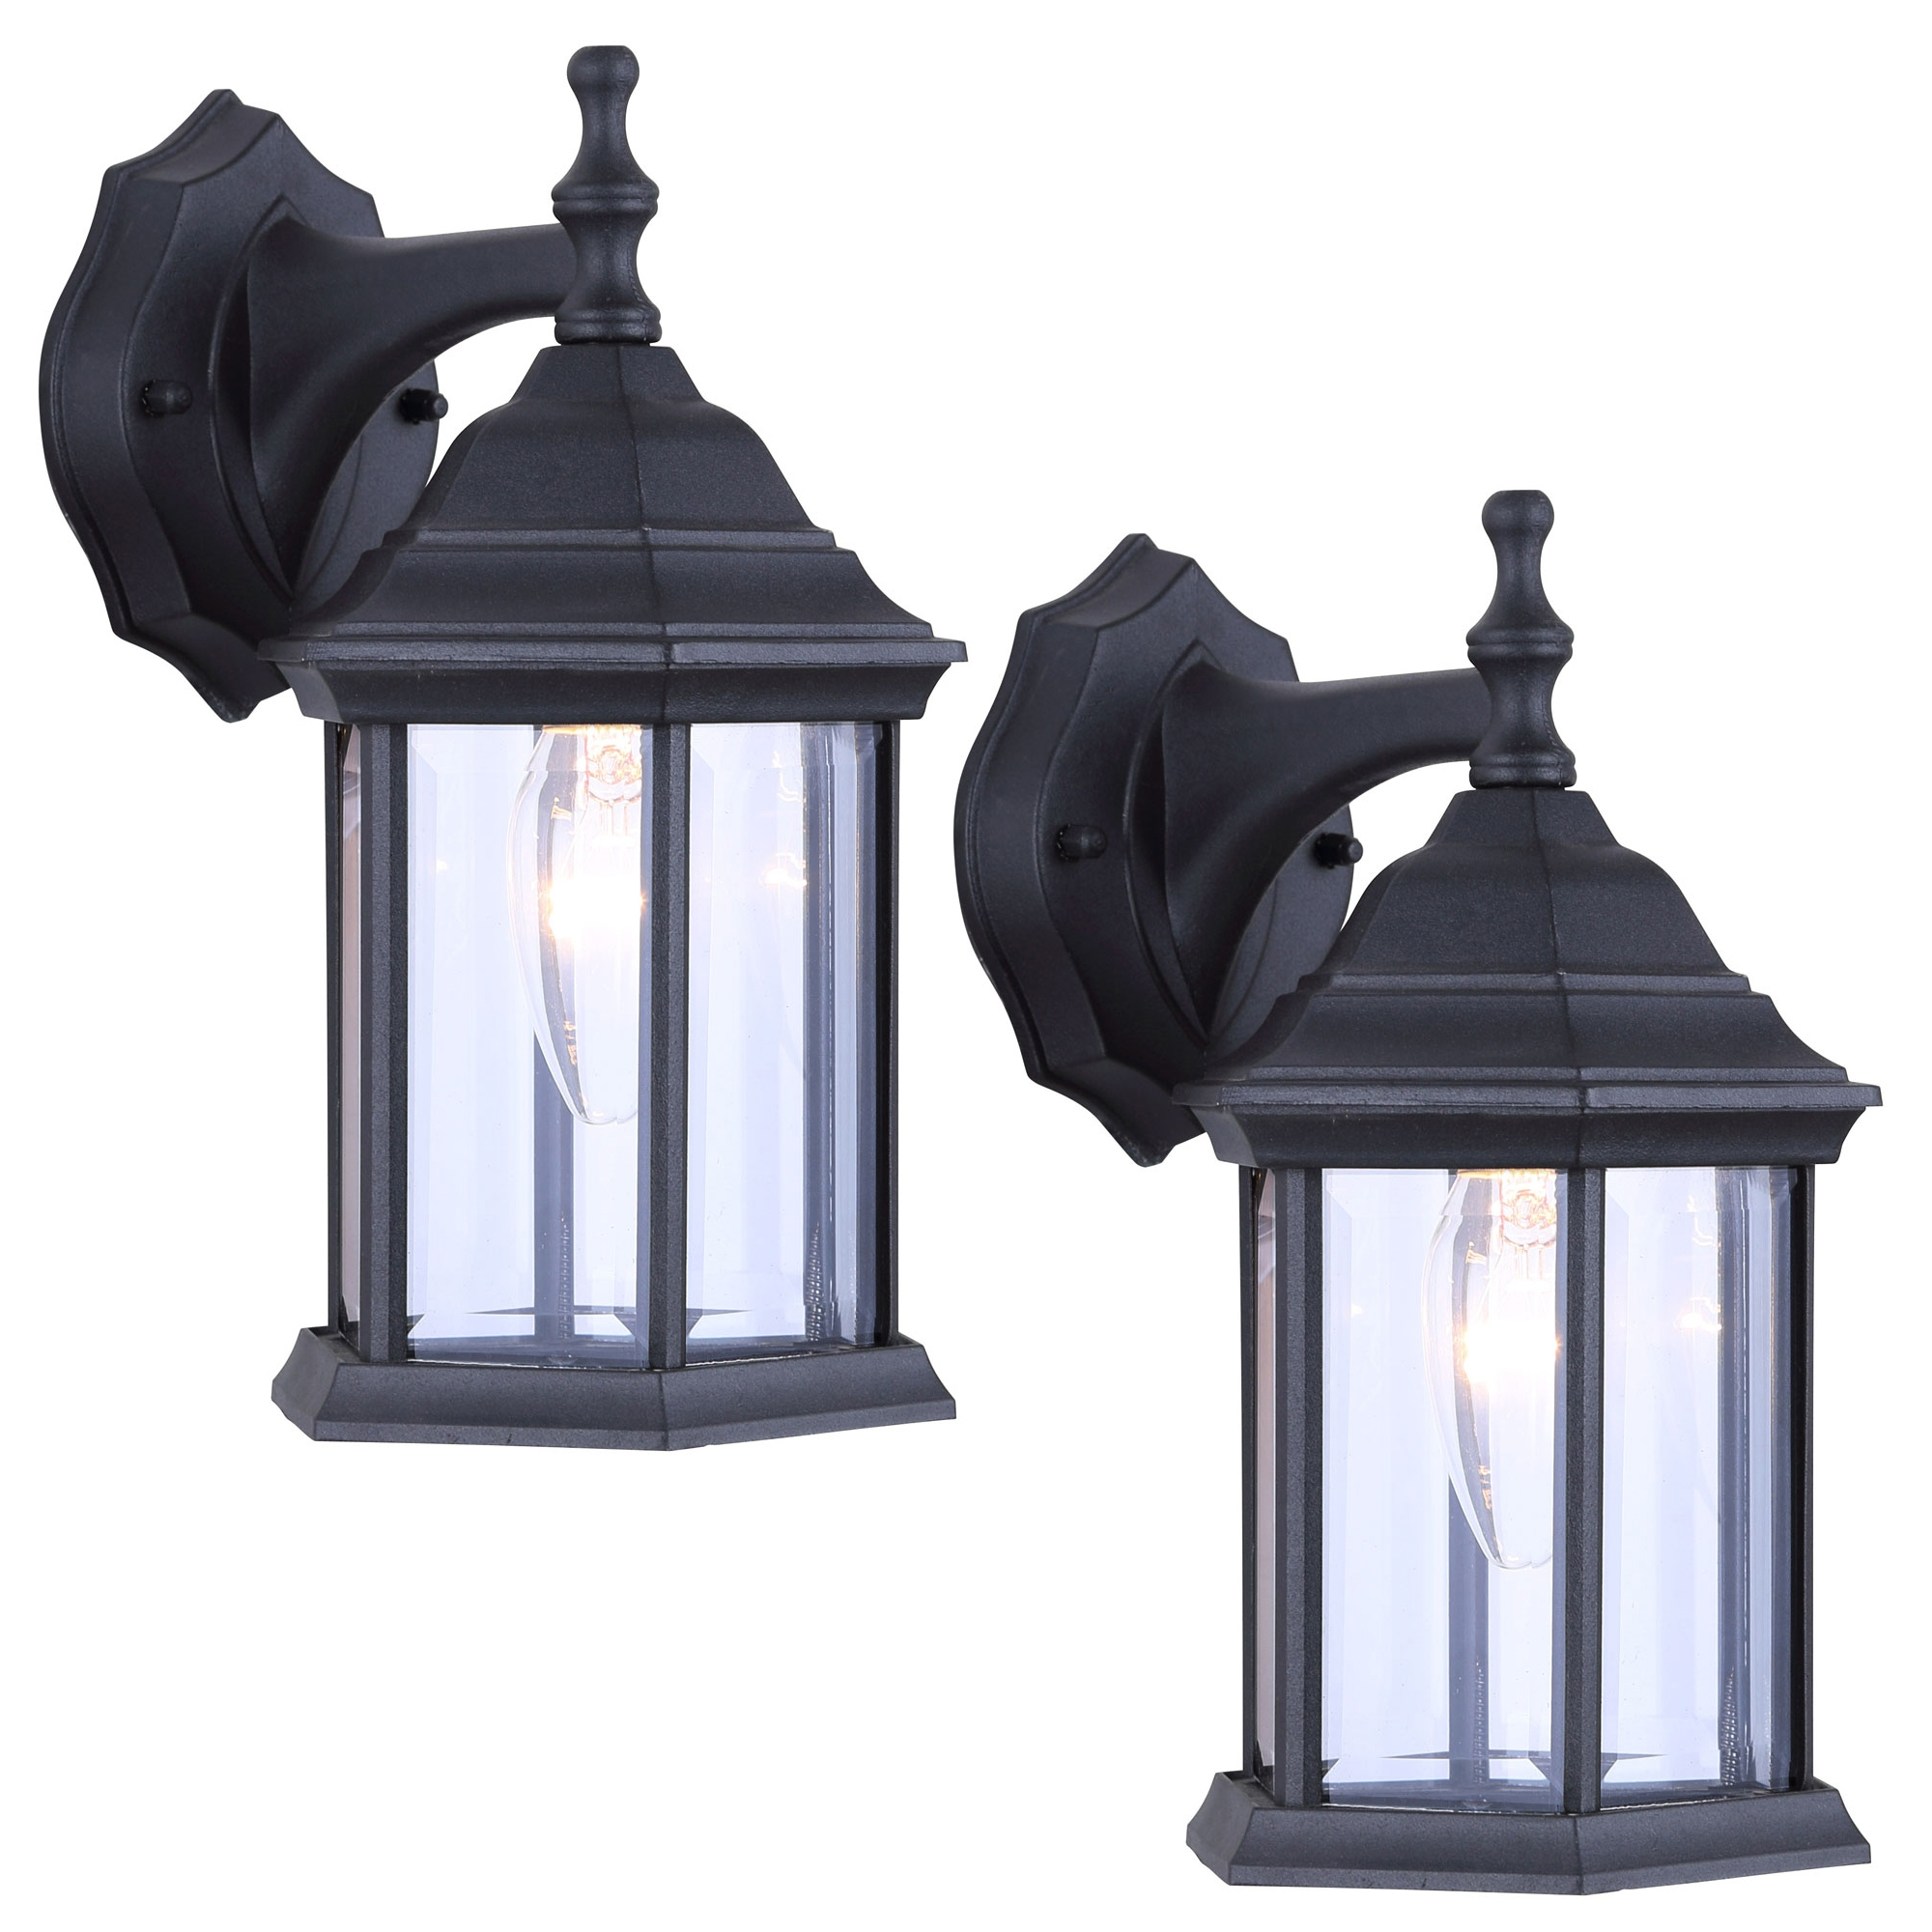 2 Pack of Exterior Wall Light Fixture Outdoor Sconce Lantern, Black